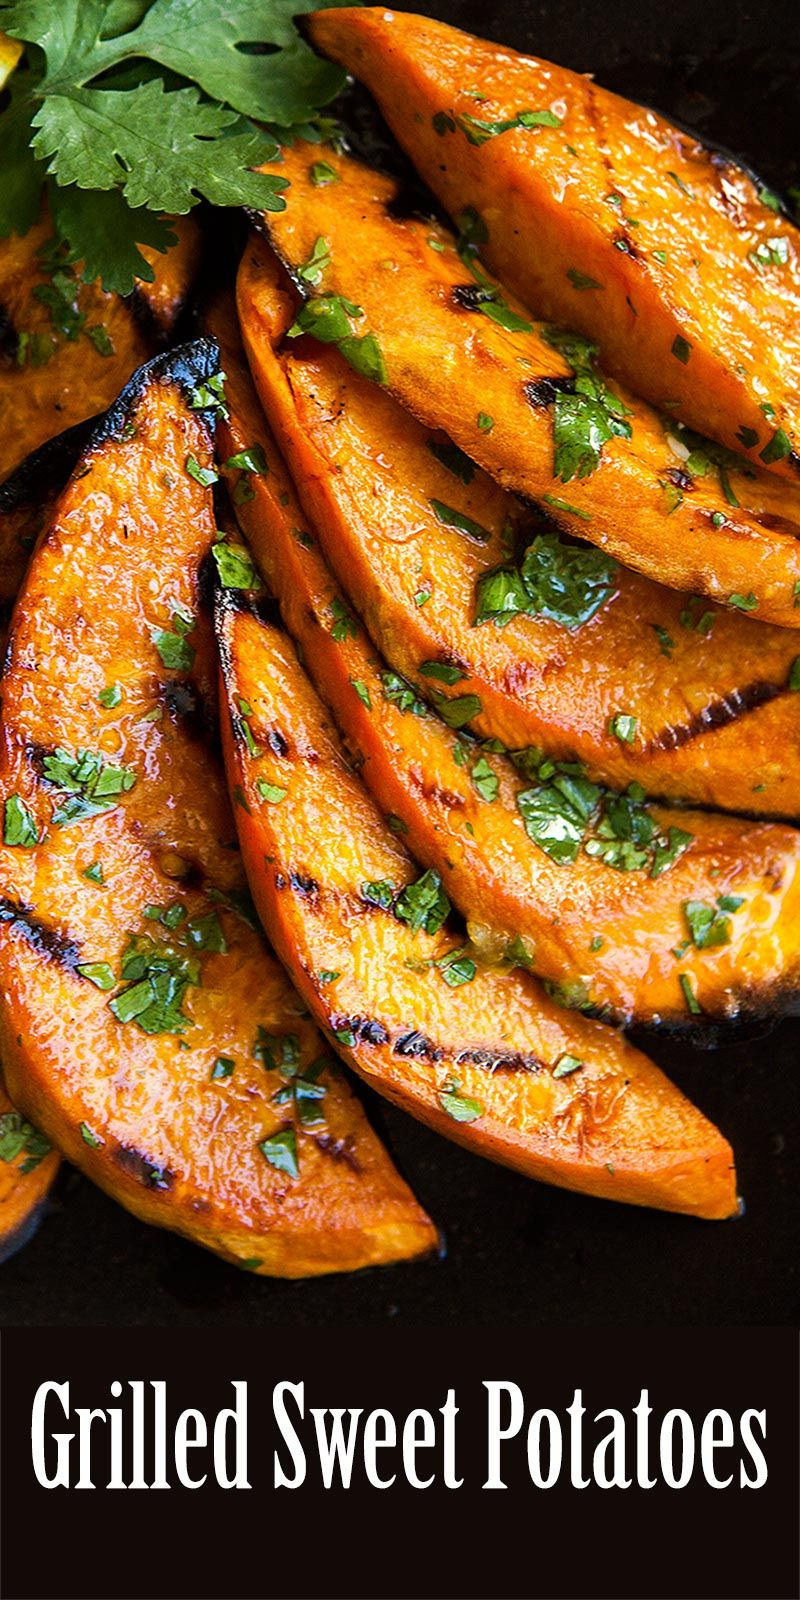 Grill Sweet Potato  Grilled sweet potatoes Slices of sweet potatoes grilled a